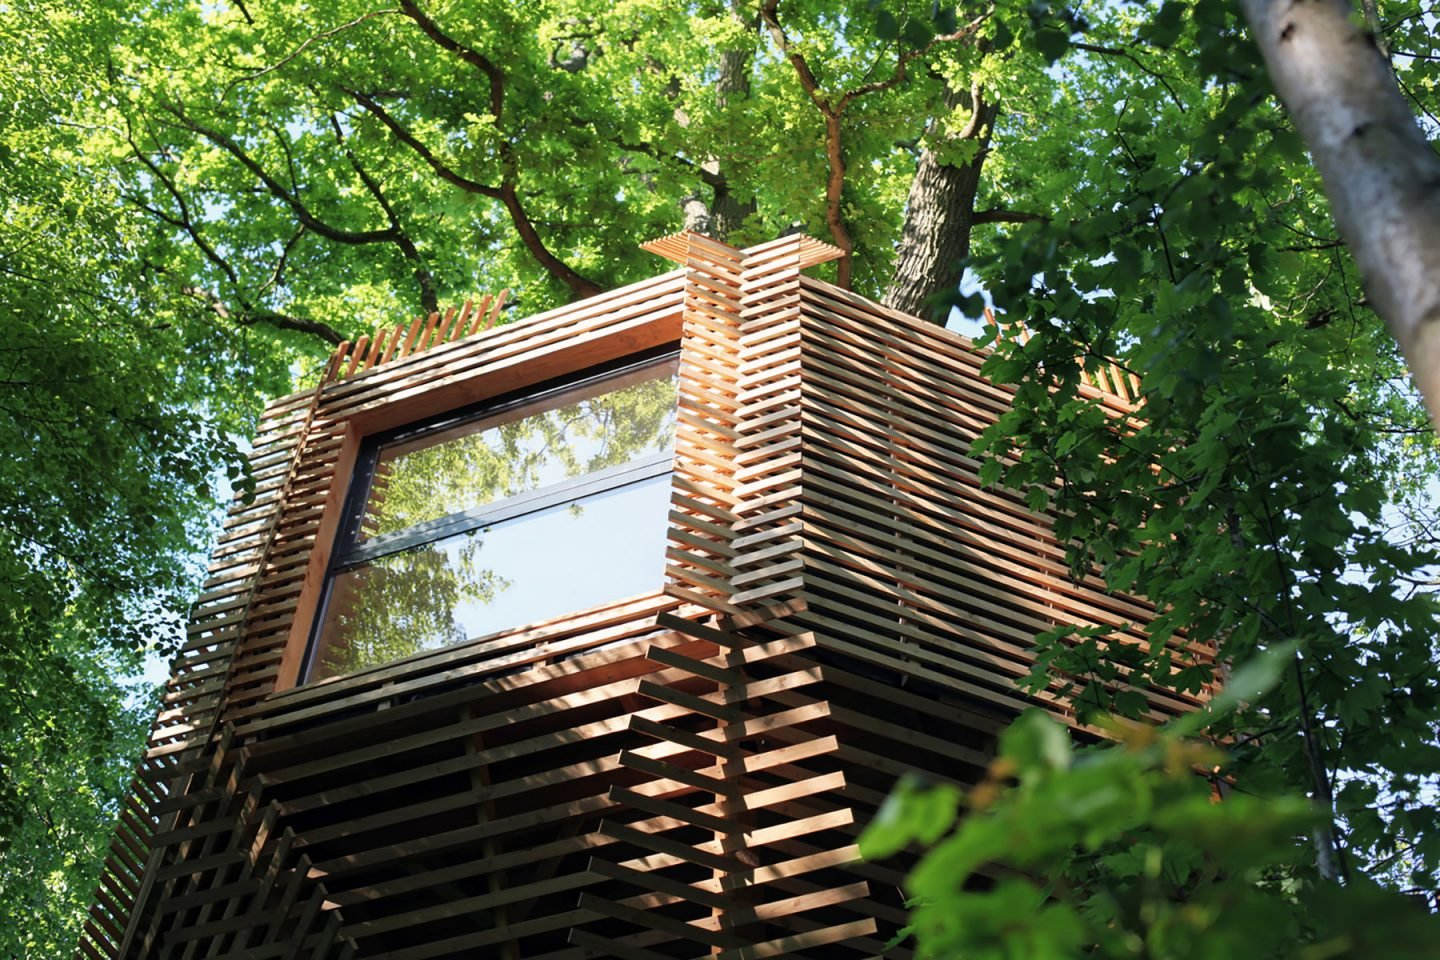 iGNANT-Architecture-Atelier-Lavit-Origin-Tree-House-012